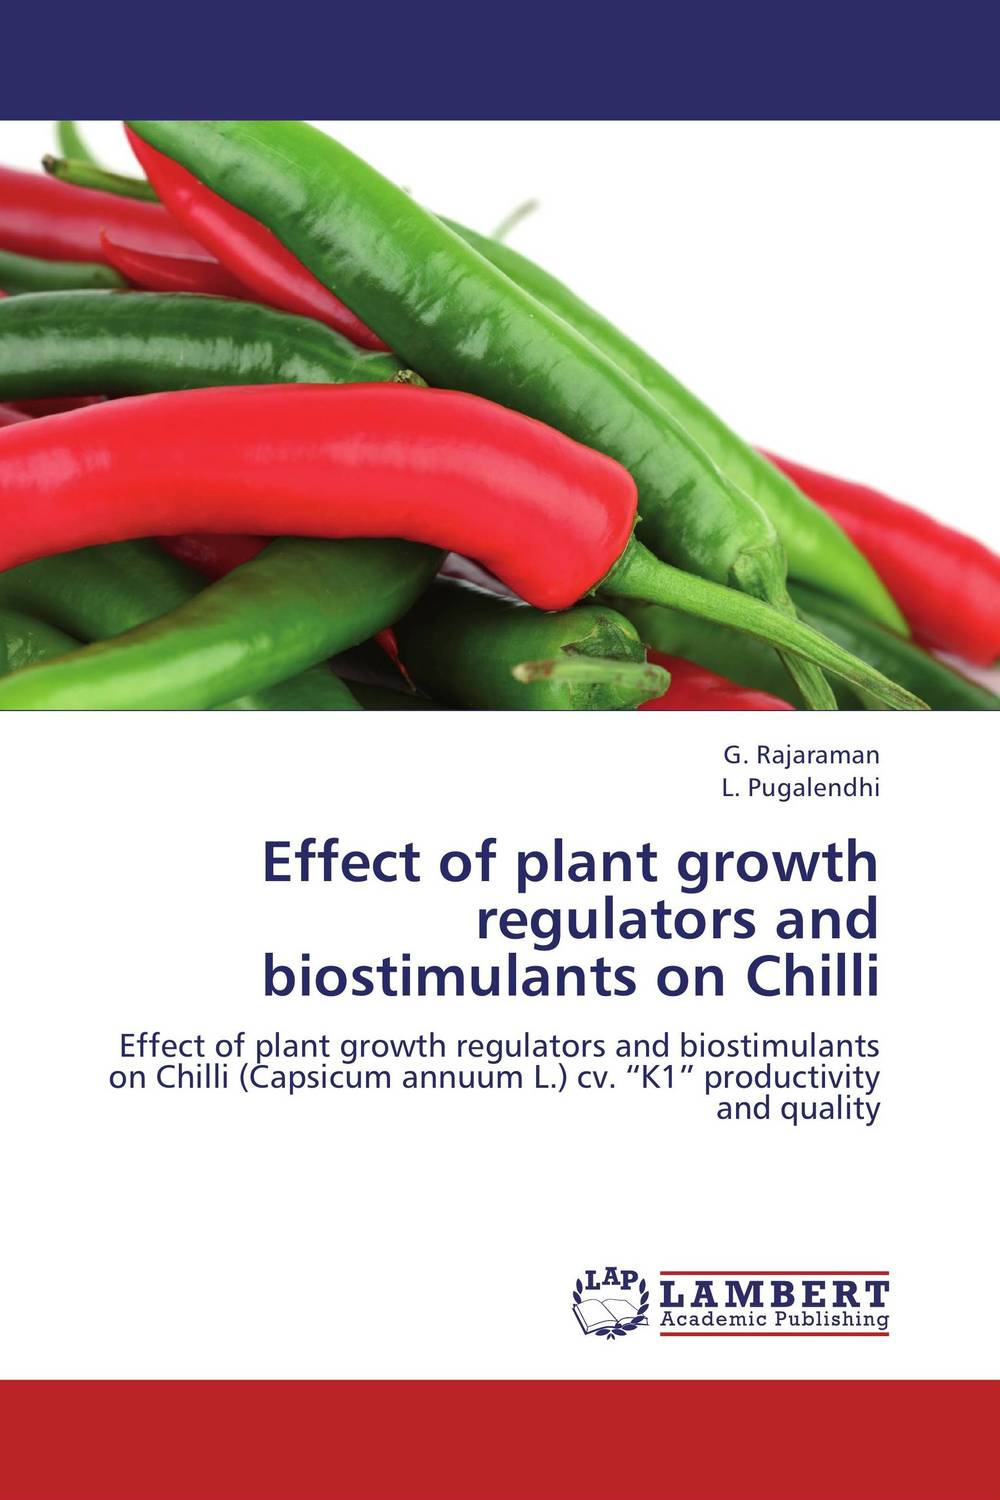 Effect of plant growth regulators and biostimulants on Chilli diallel analysis in chilli capsicum annuum l